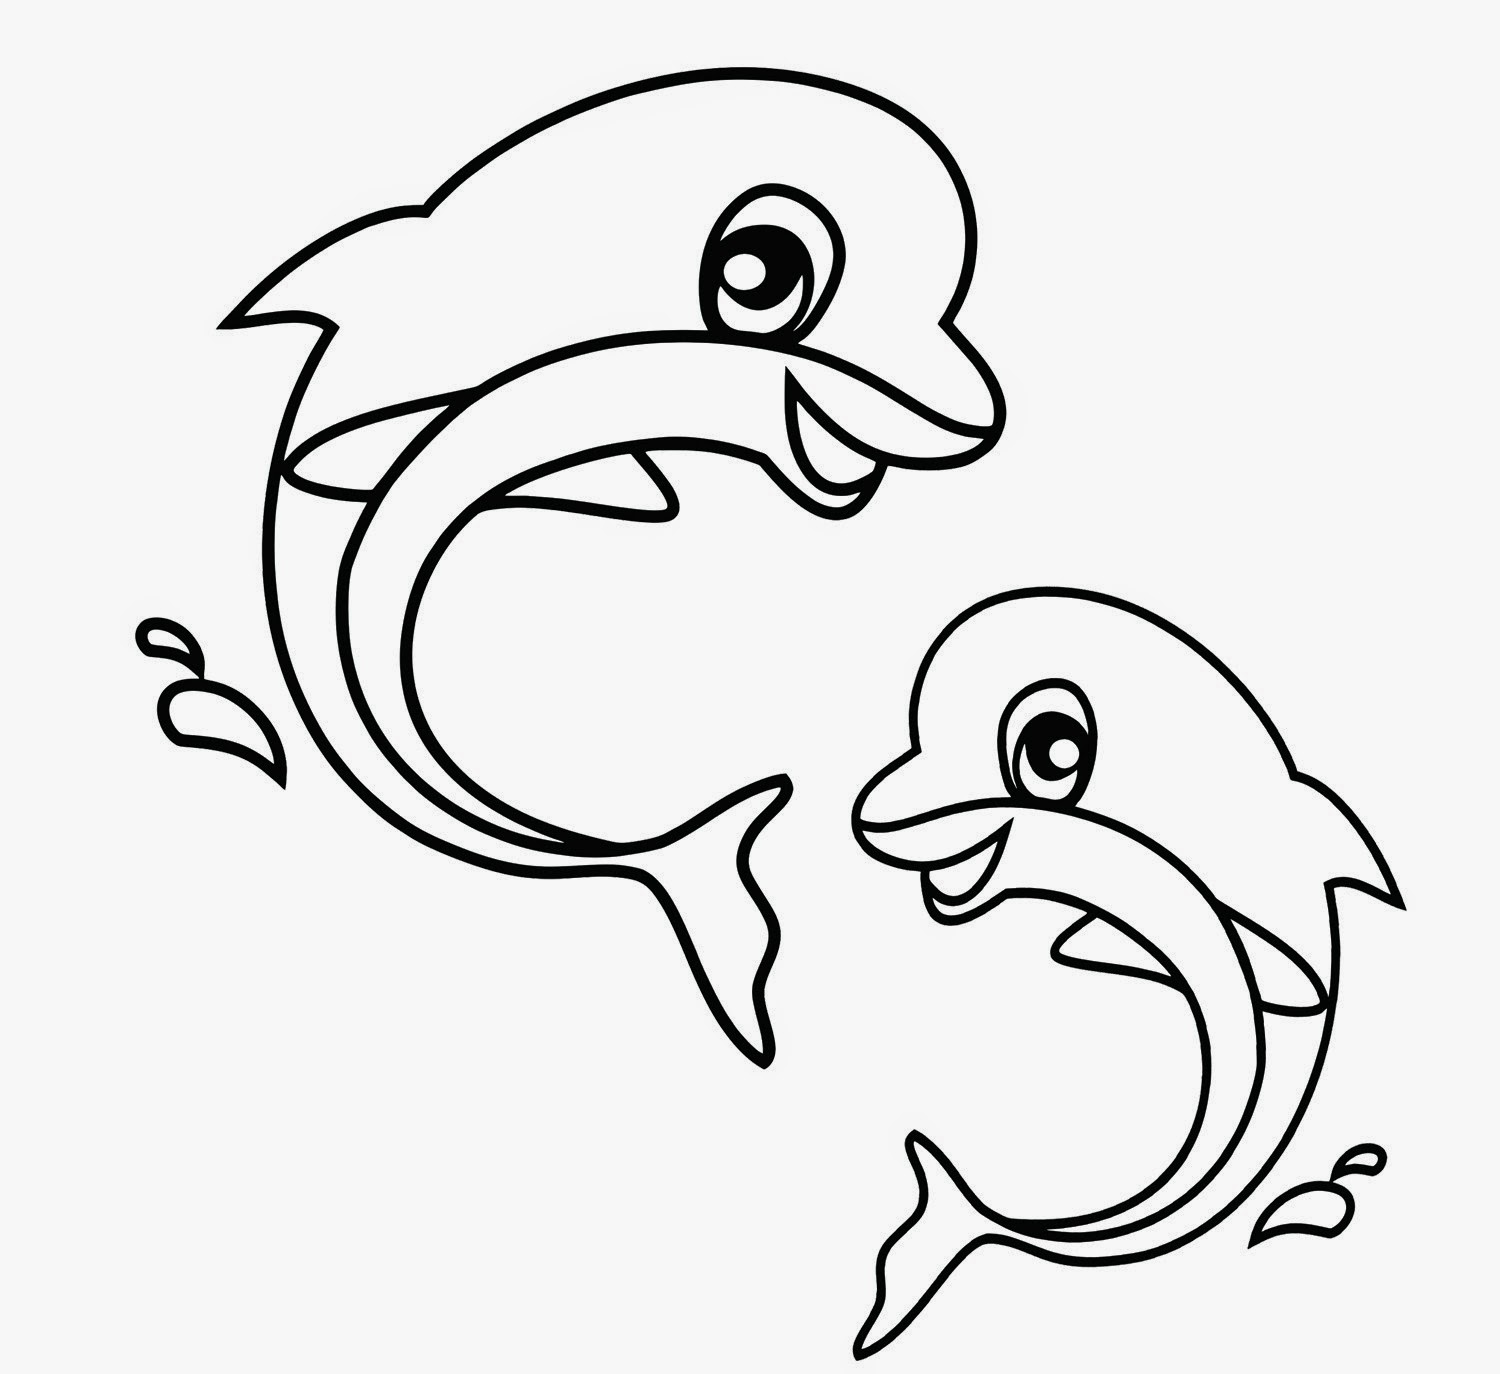 dolphin cartoon coloring pages free easy to print dolphin coloring pages in 2020 pages dolphin coloring cartoon